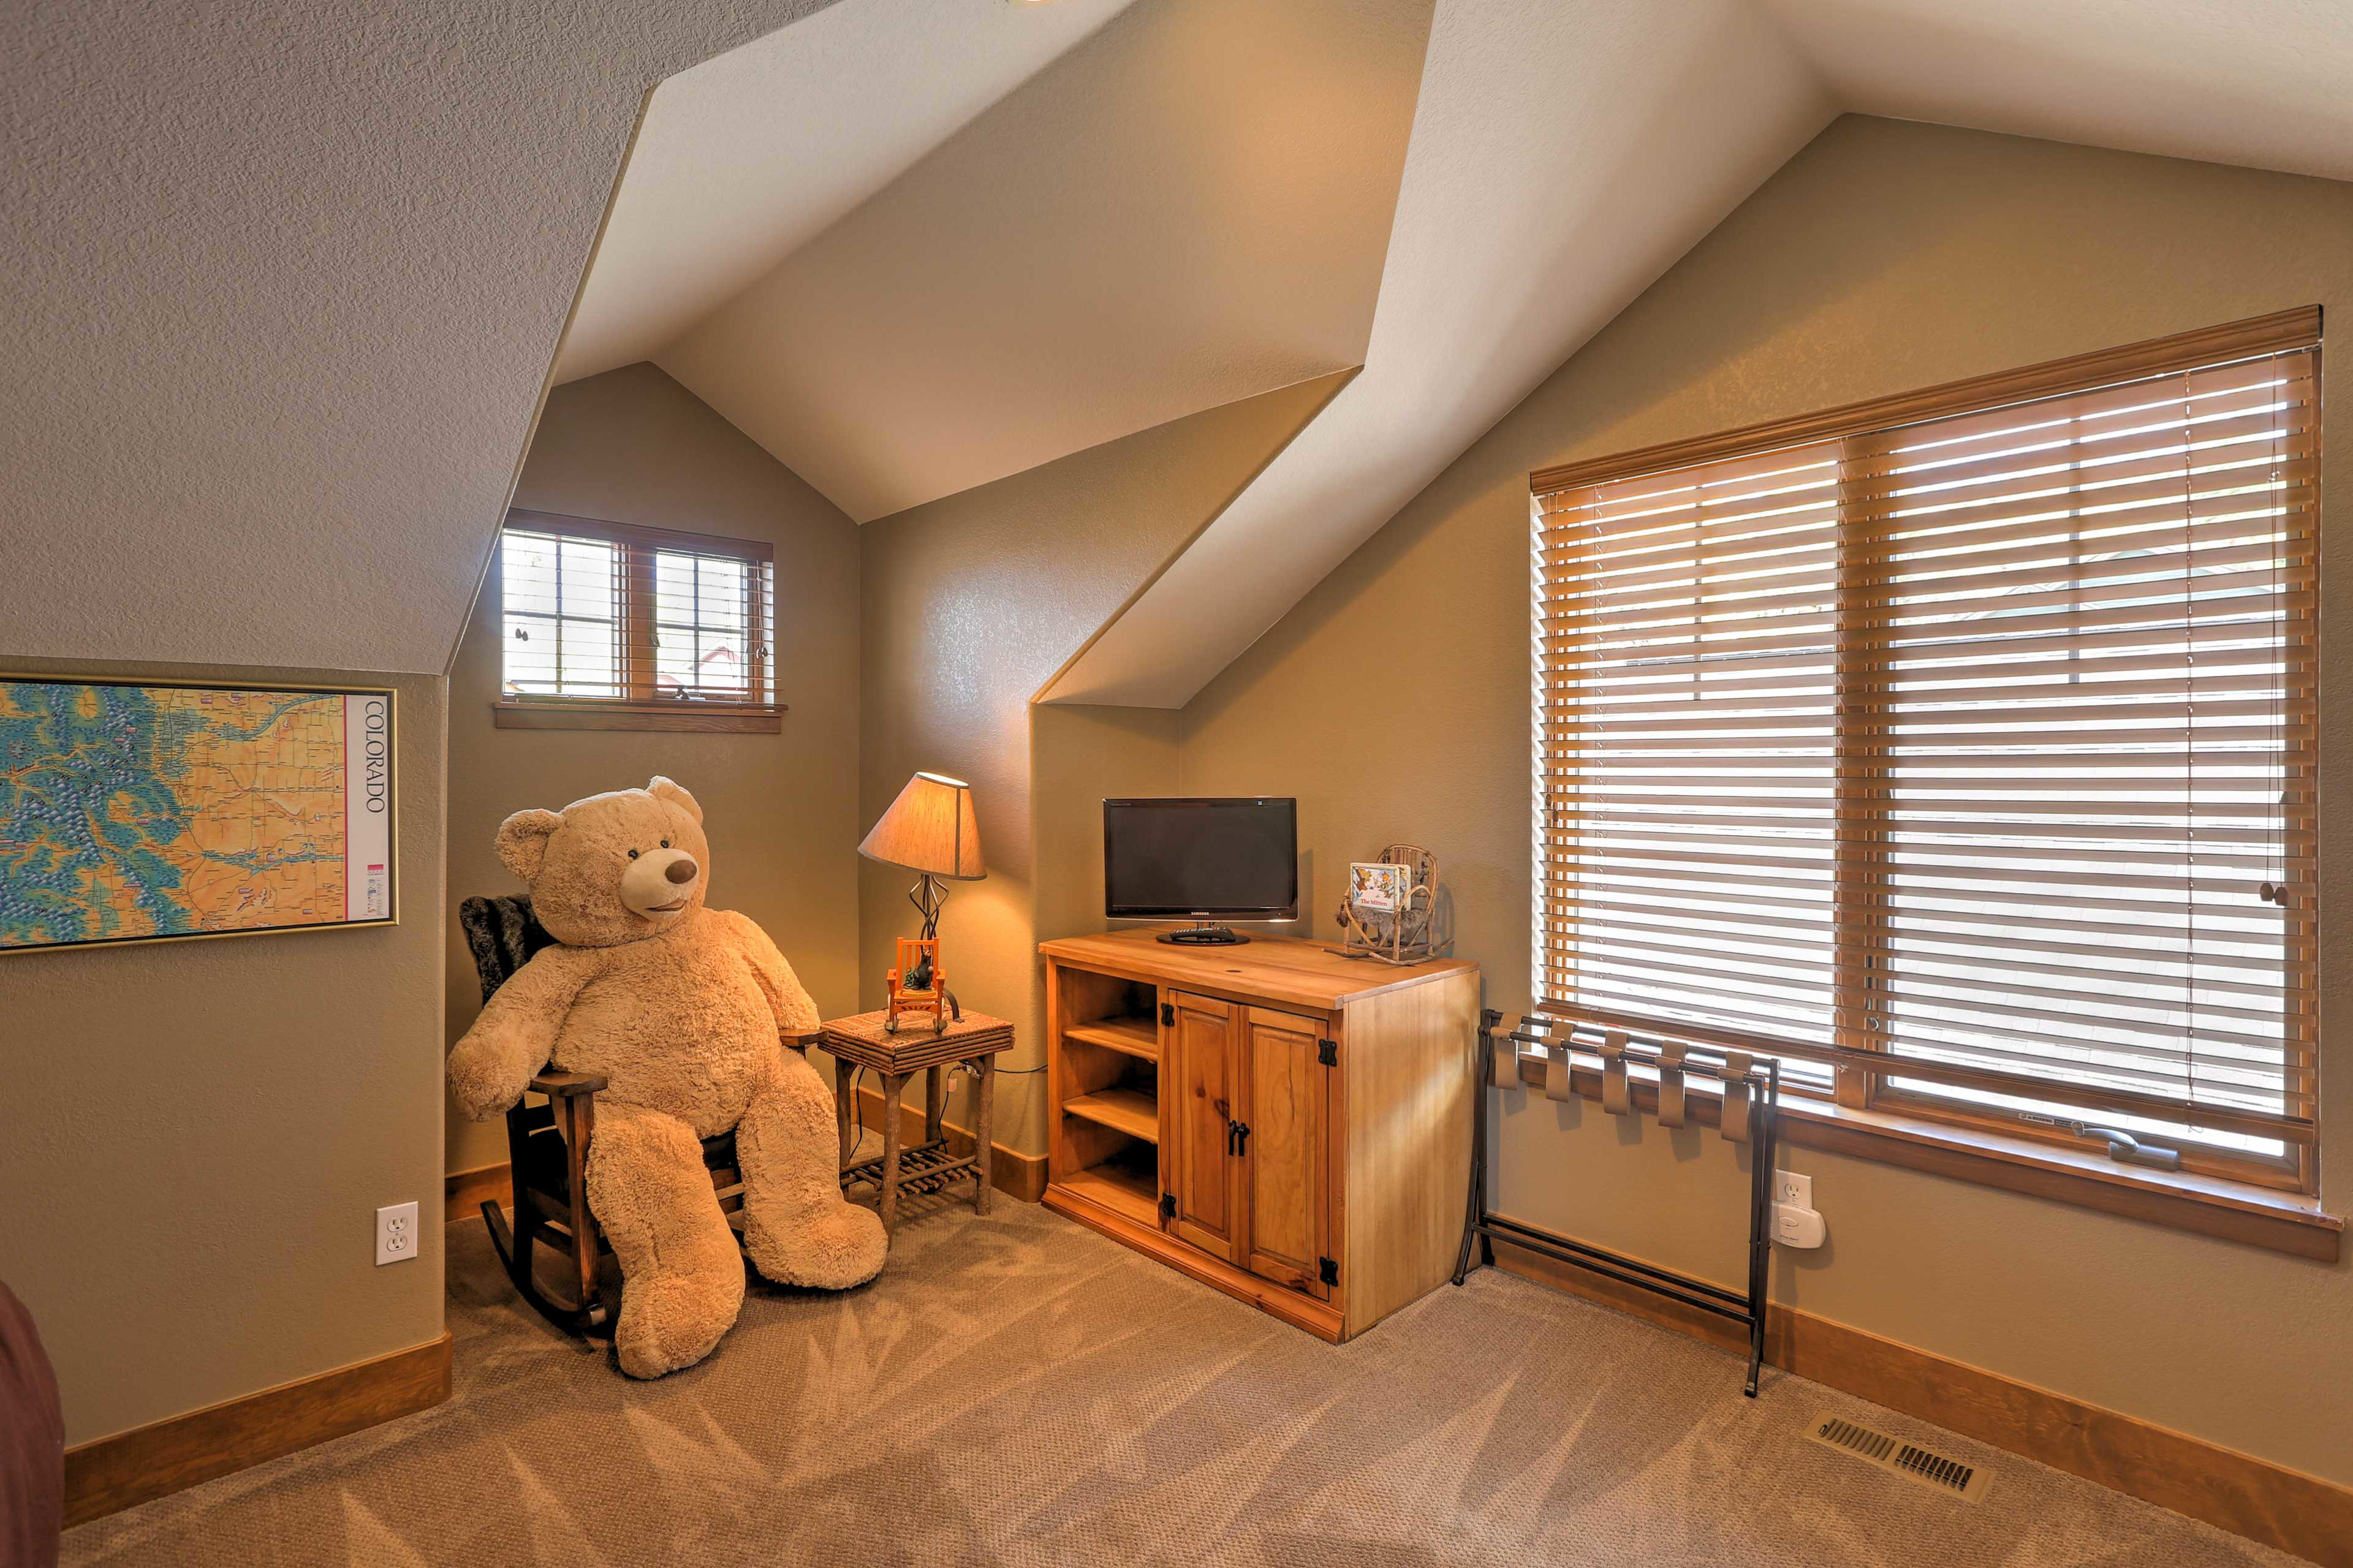 Please note that the teddy bear is no longer in this room.